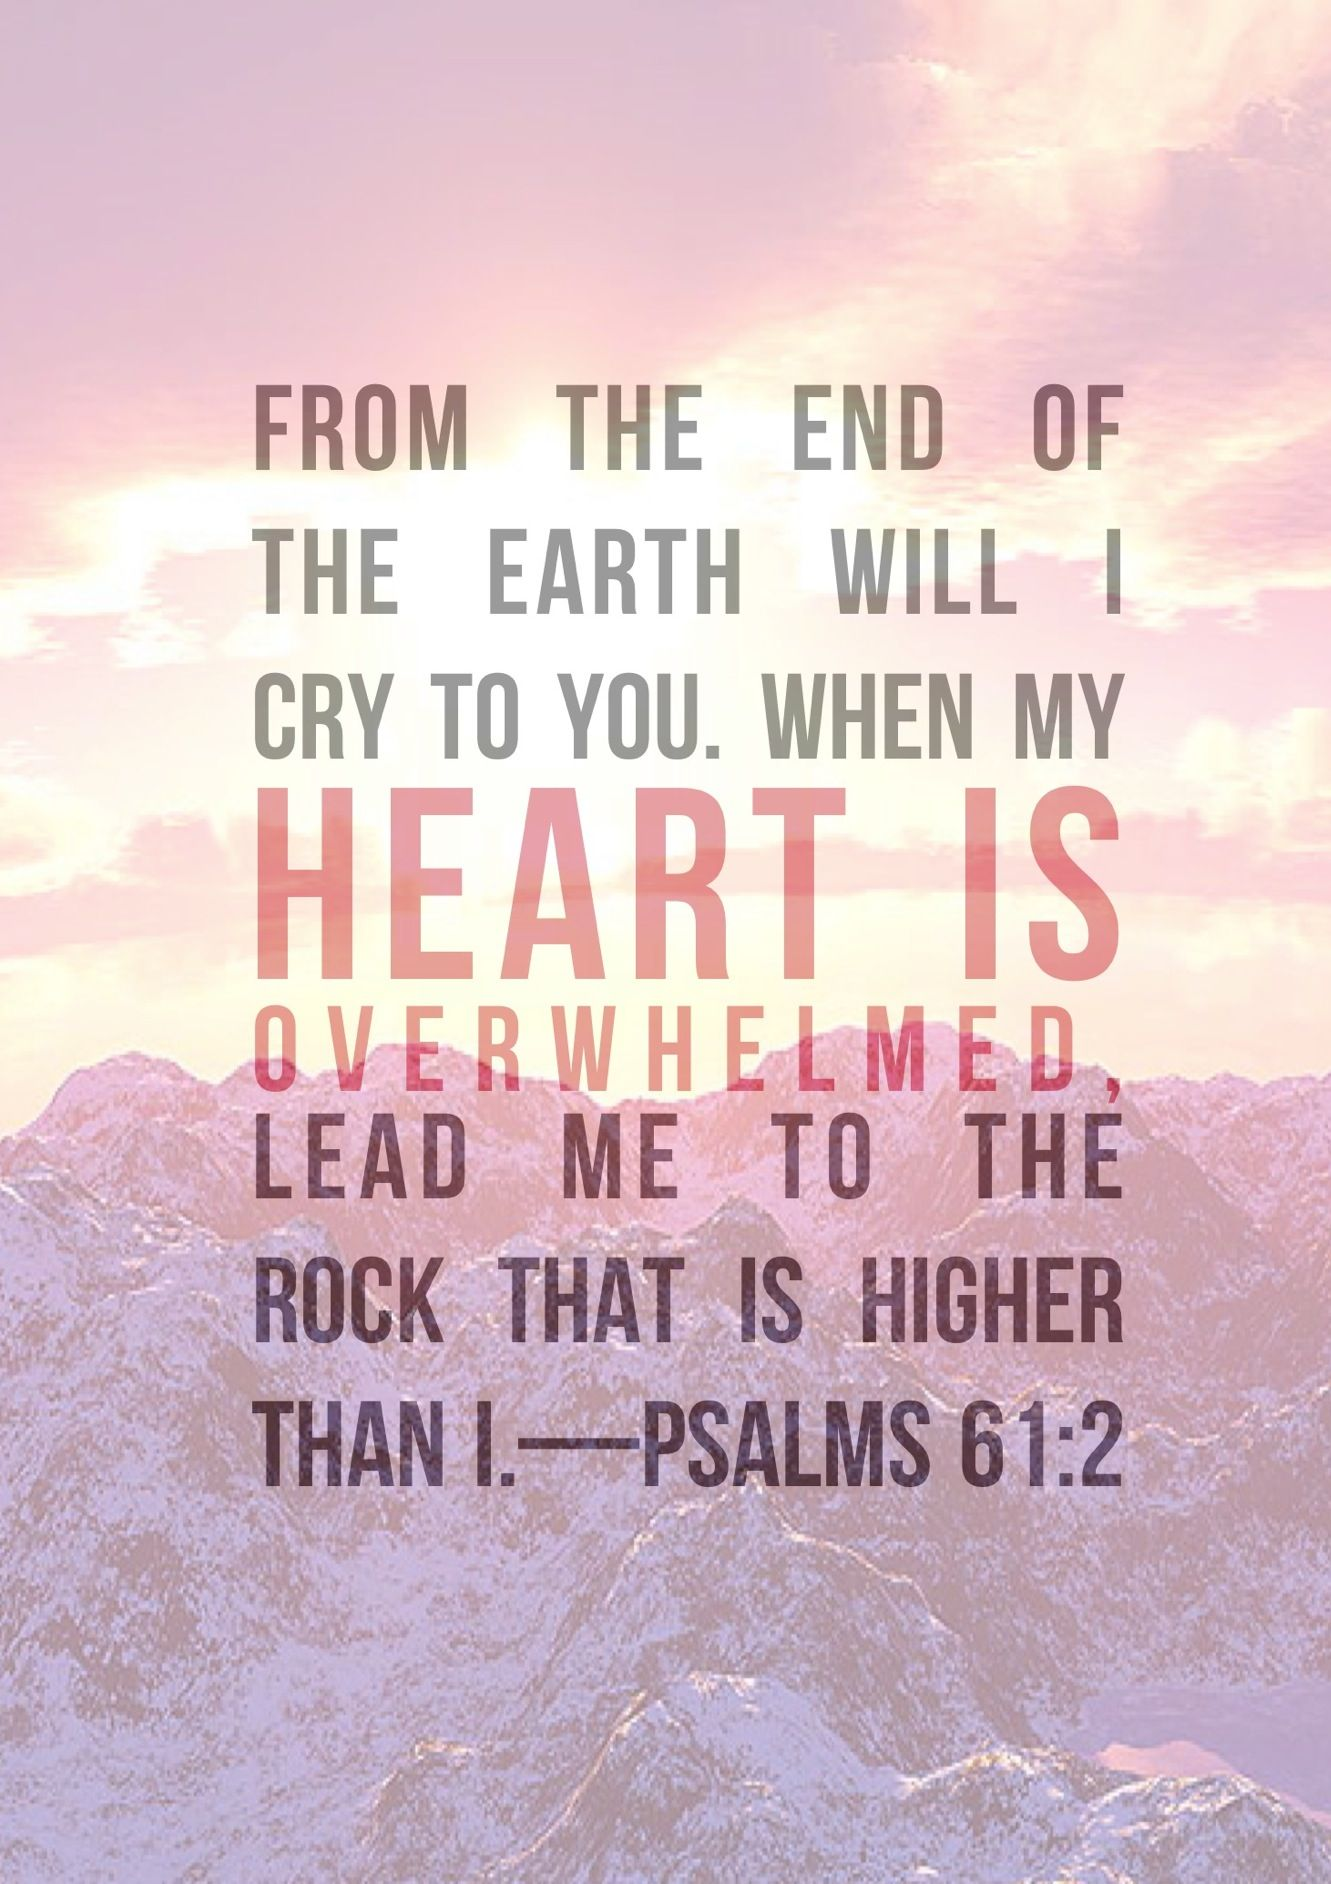 Lead me to the ROCK that is higher than I Follow us at